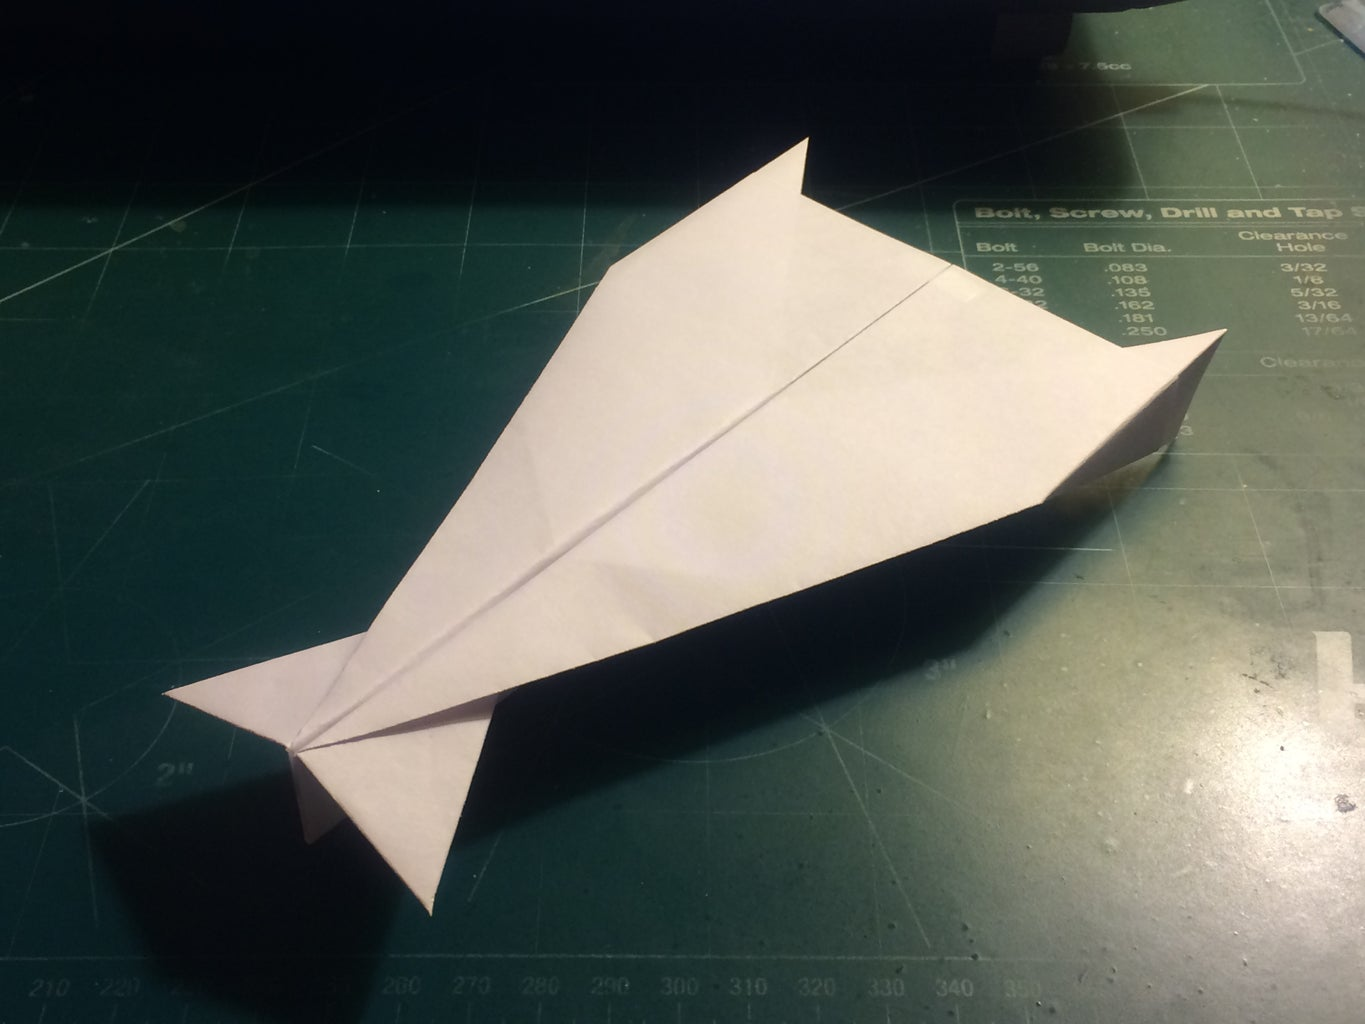 How to Make the Strike Ultraceptor Paper Airplane